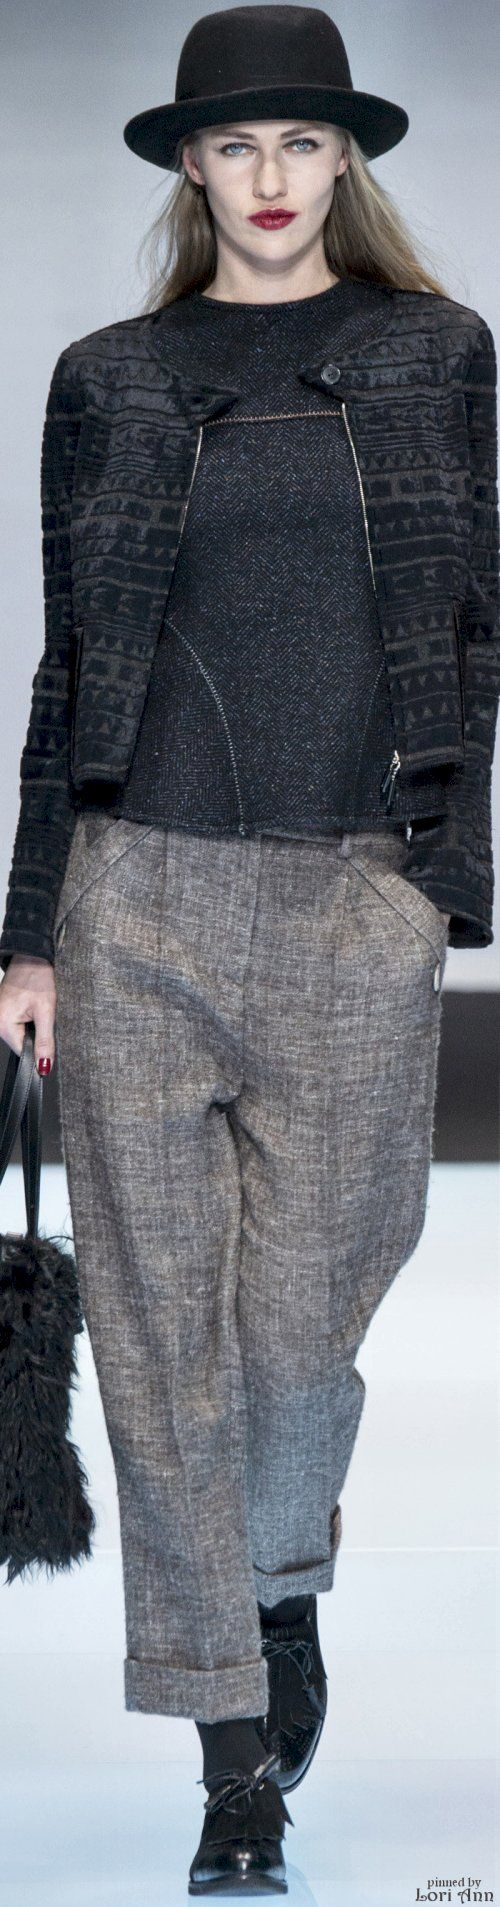 Giorgio Armani from Menswear Fall 2016 women fashion outfit clothing style apparel @roressclothes closet ideas